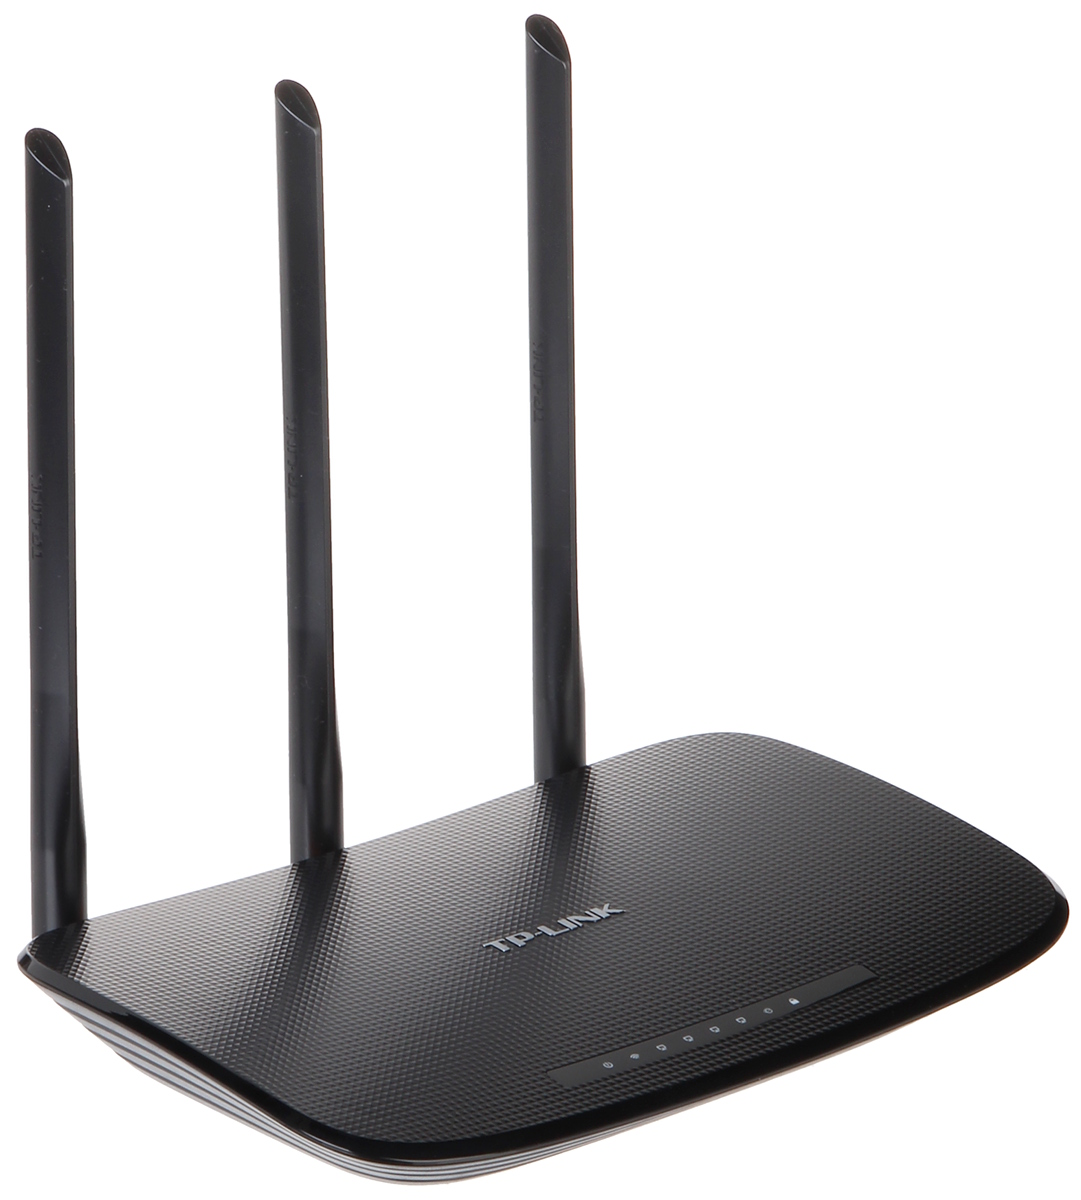 TP-Link N450 Wi-Fi Router Wireless Internet Router for Wireless Access TL-WR940N